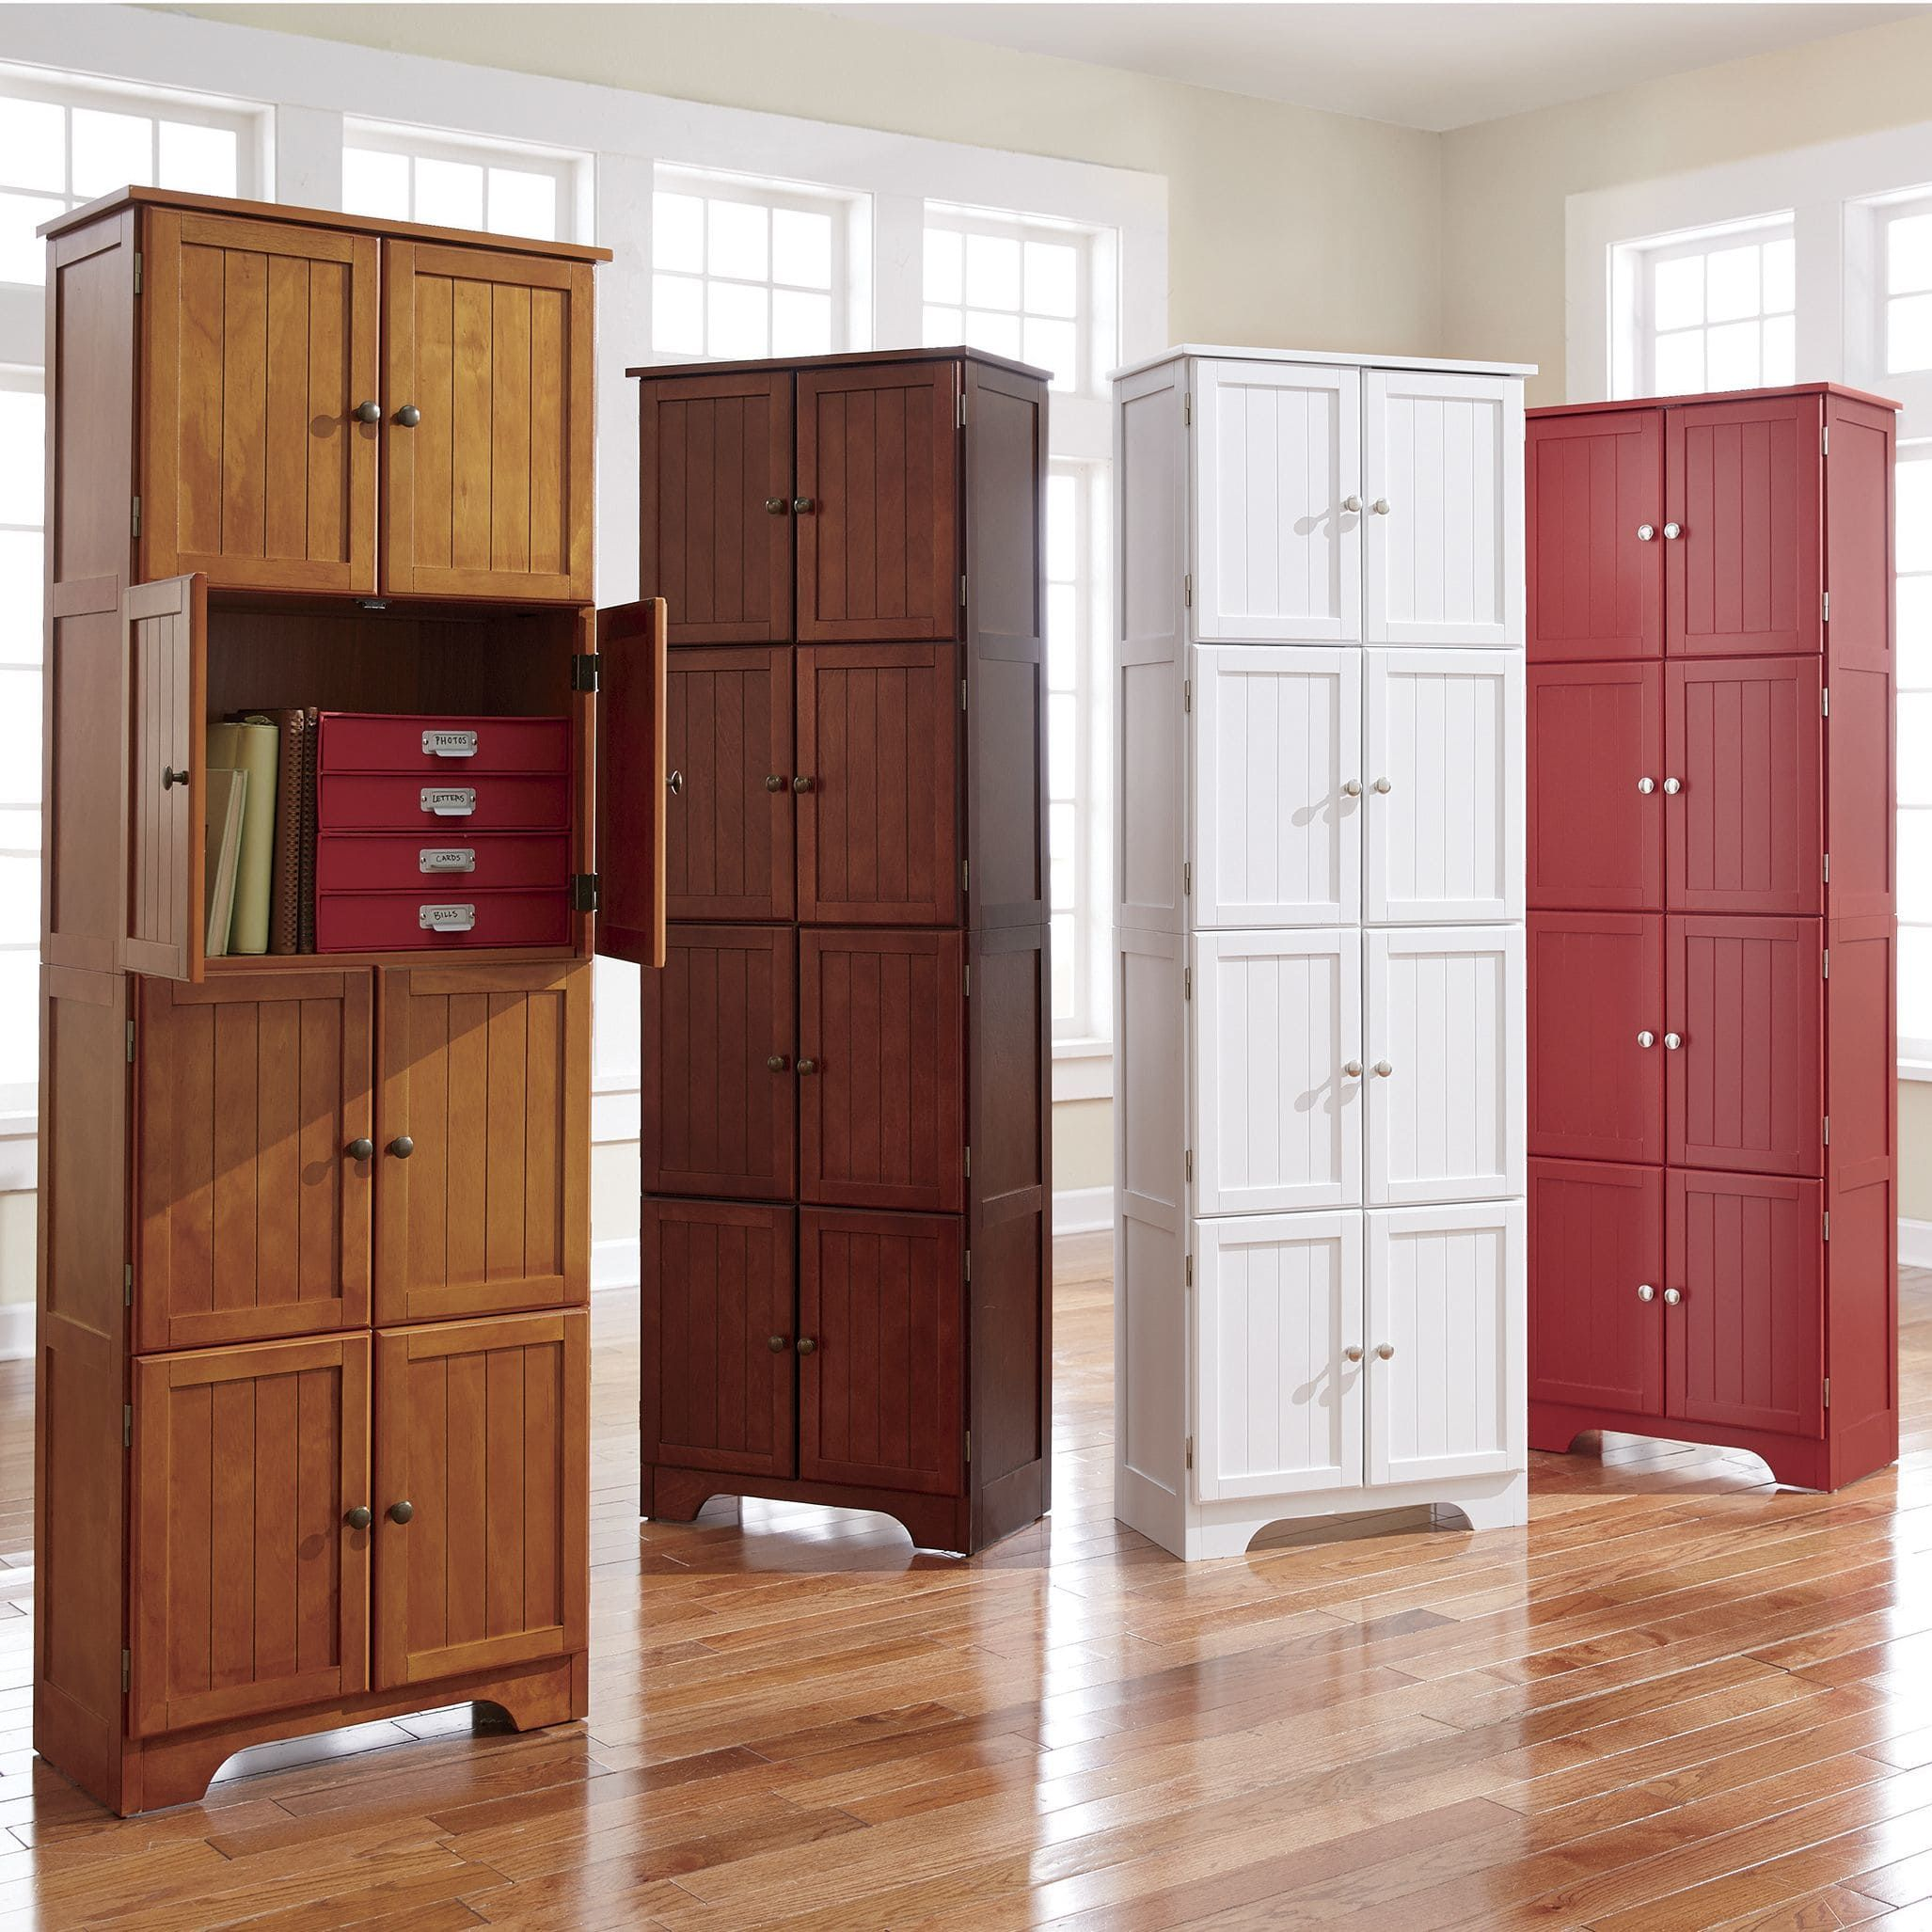 8 door wall cabinet in 2020 tall cabinet storage corner on wall cabinets id=86903